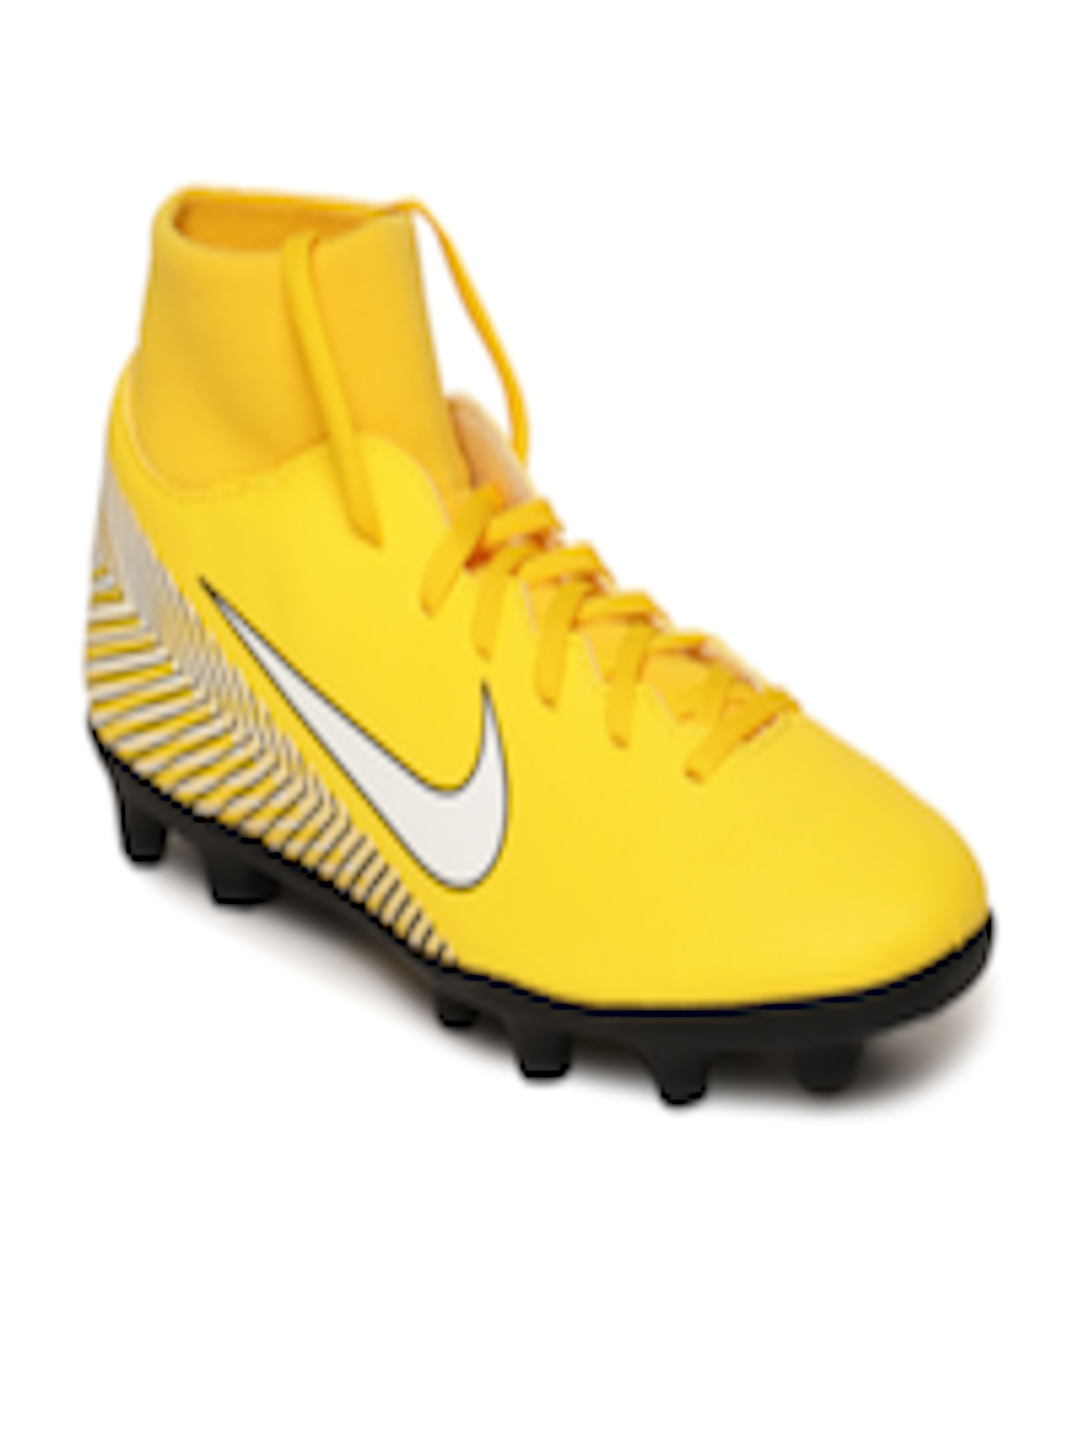 free shipping 36cf9 c13e1 Buy Nike Unisex Yellow Superfly 6 Club MG Football Shoes - - Footwear for  Unisex